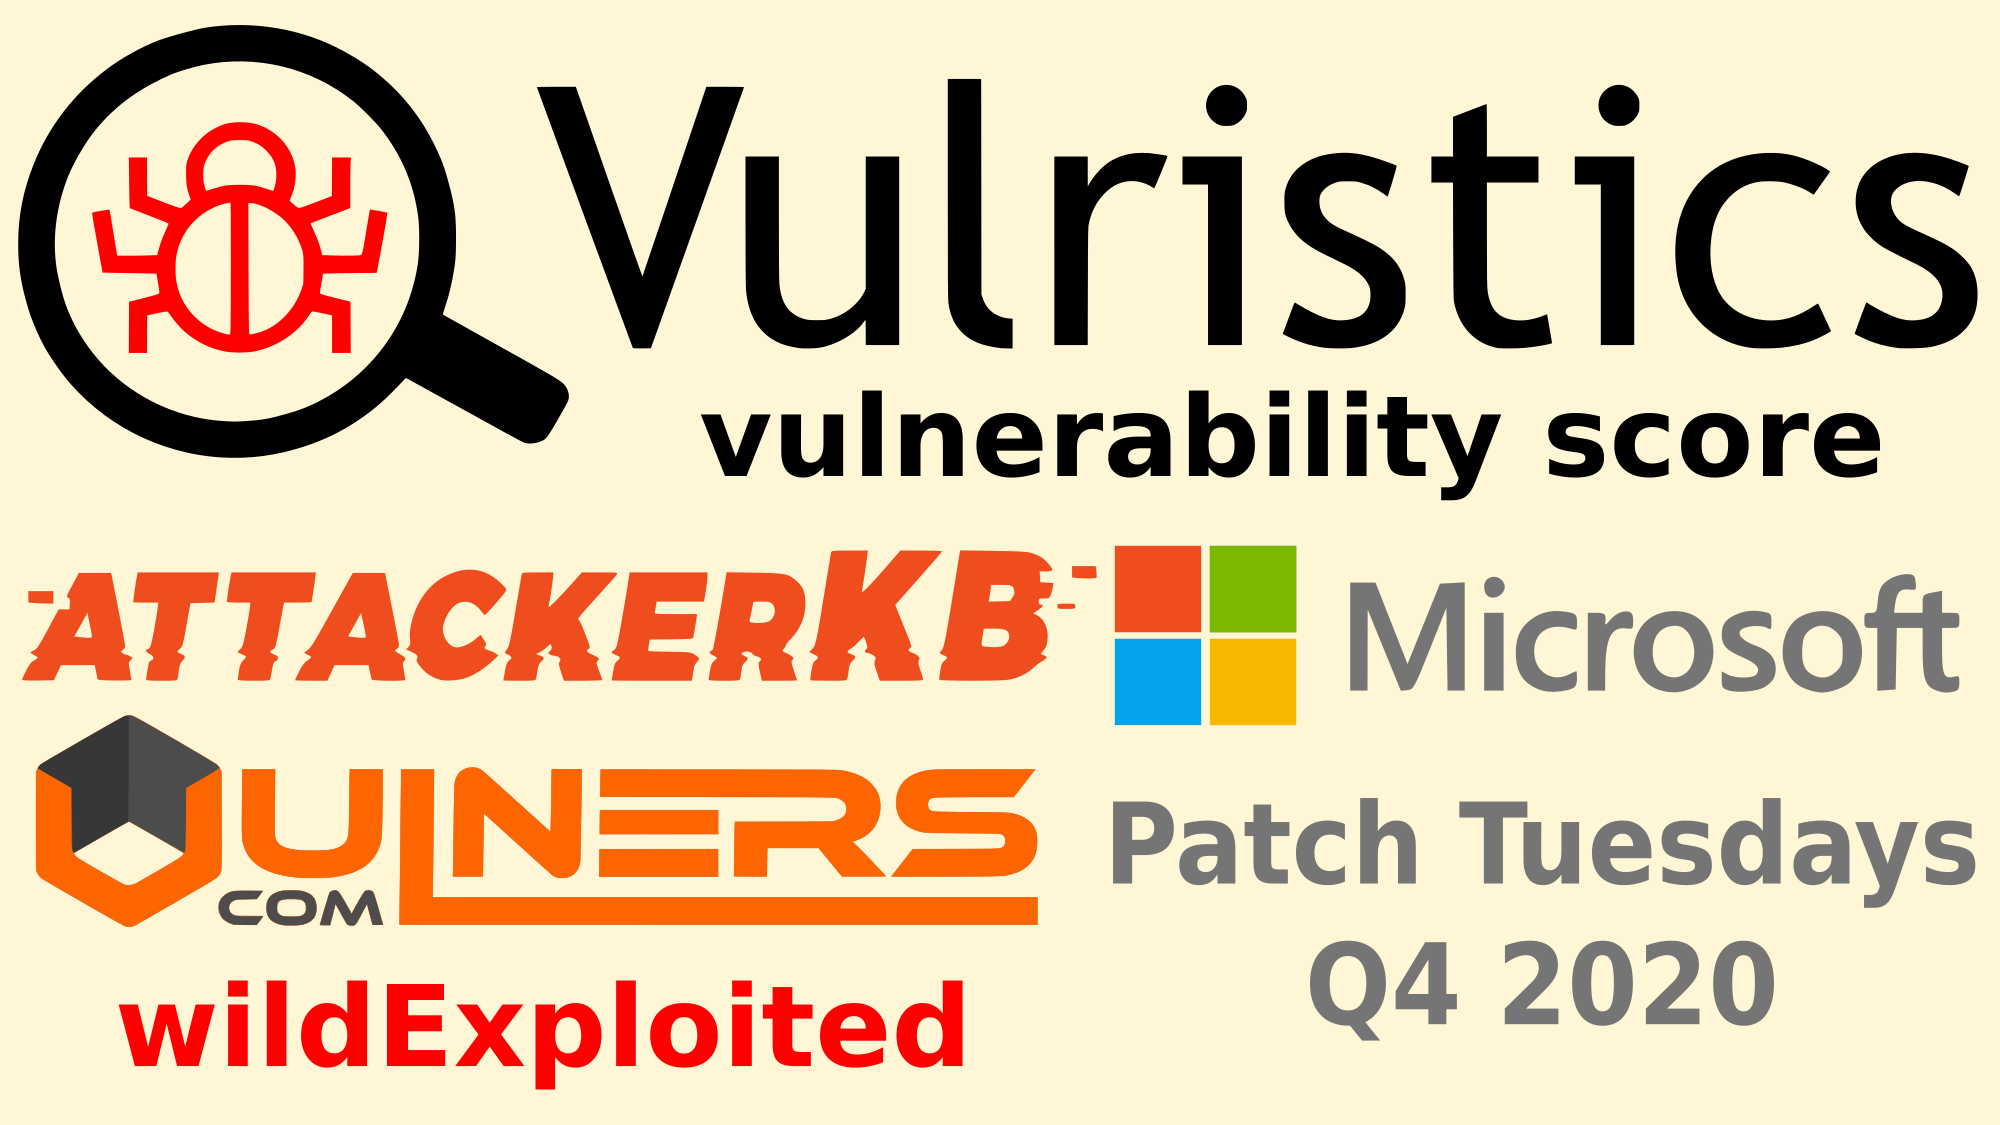 Vulristics Vulnerability Scores, automated data collection and Microsoft Patch Tuesday Q4 2020